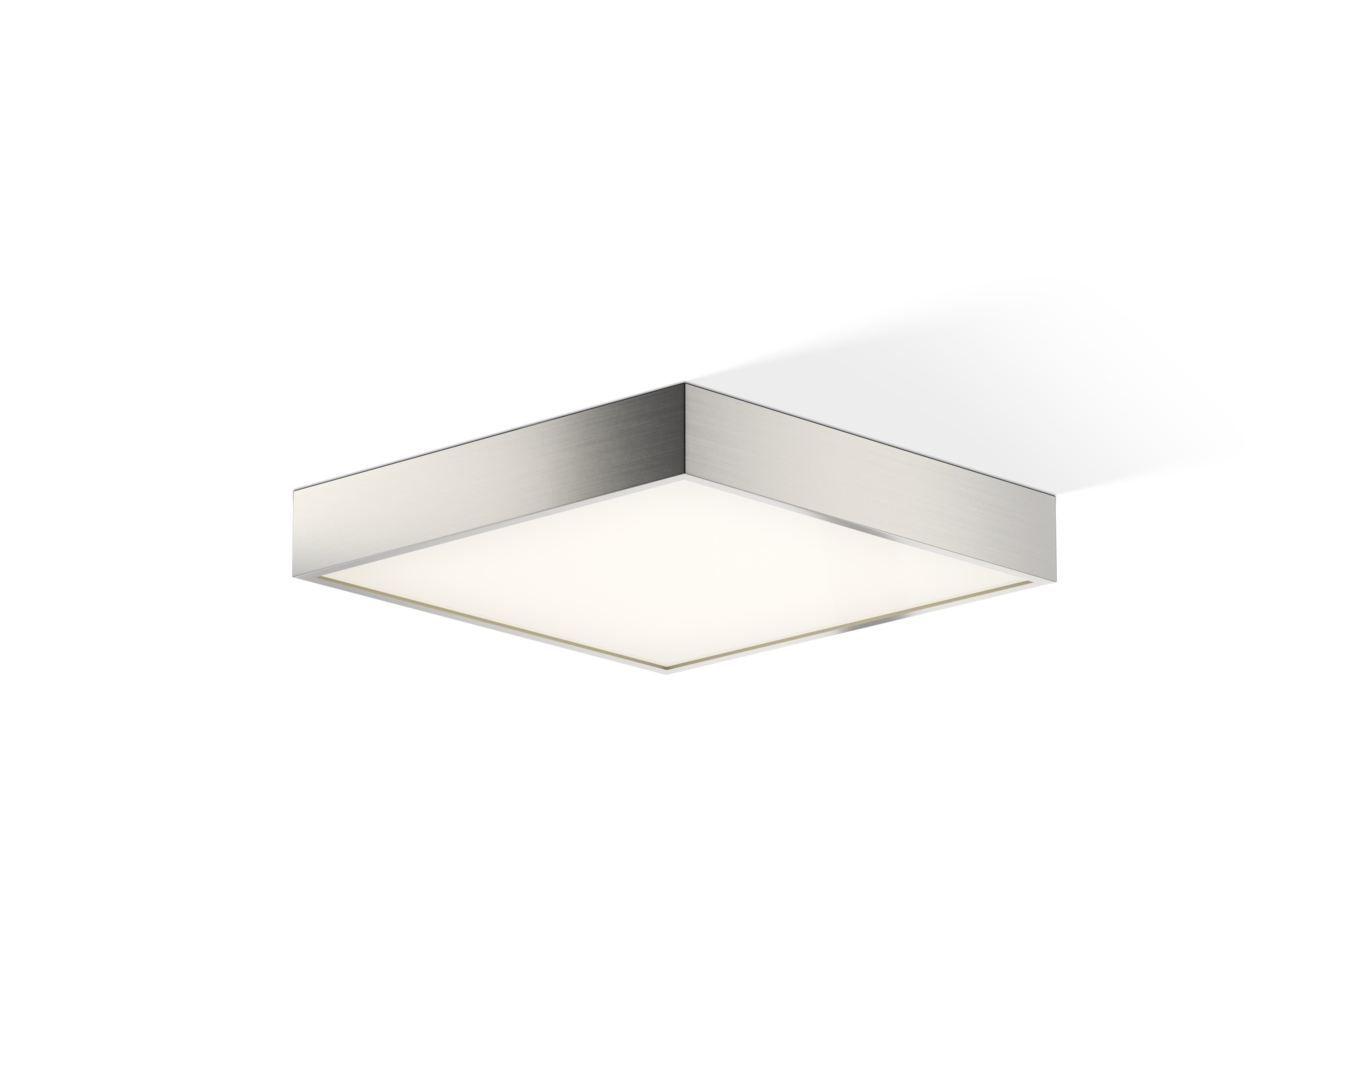 Decor Walther 0218834 DW-Cut 30 N LED Ceiling Light - Nickel Satined